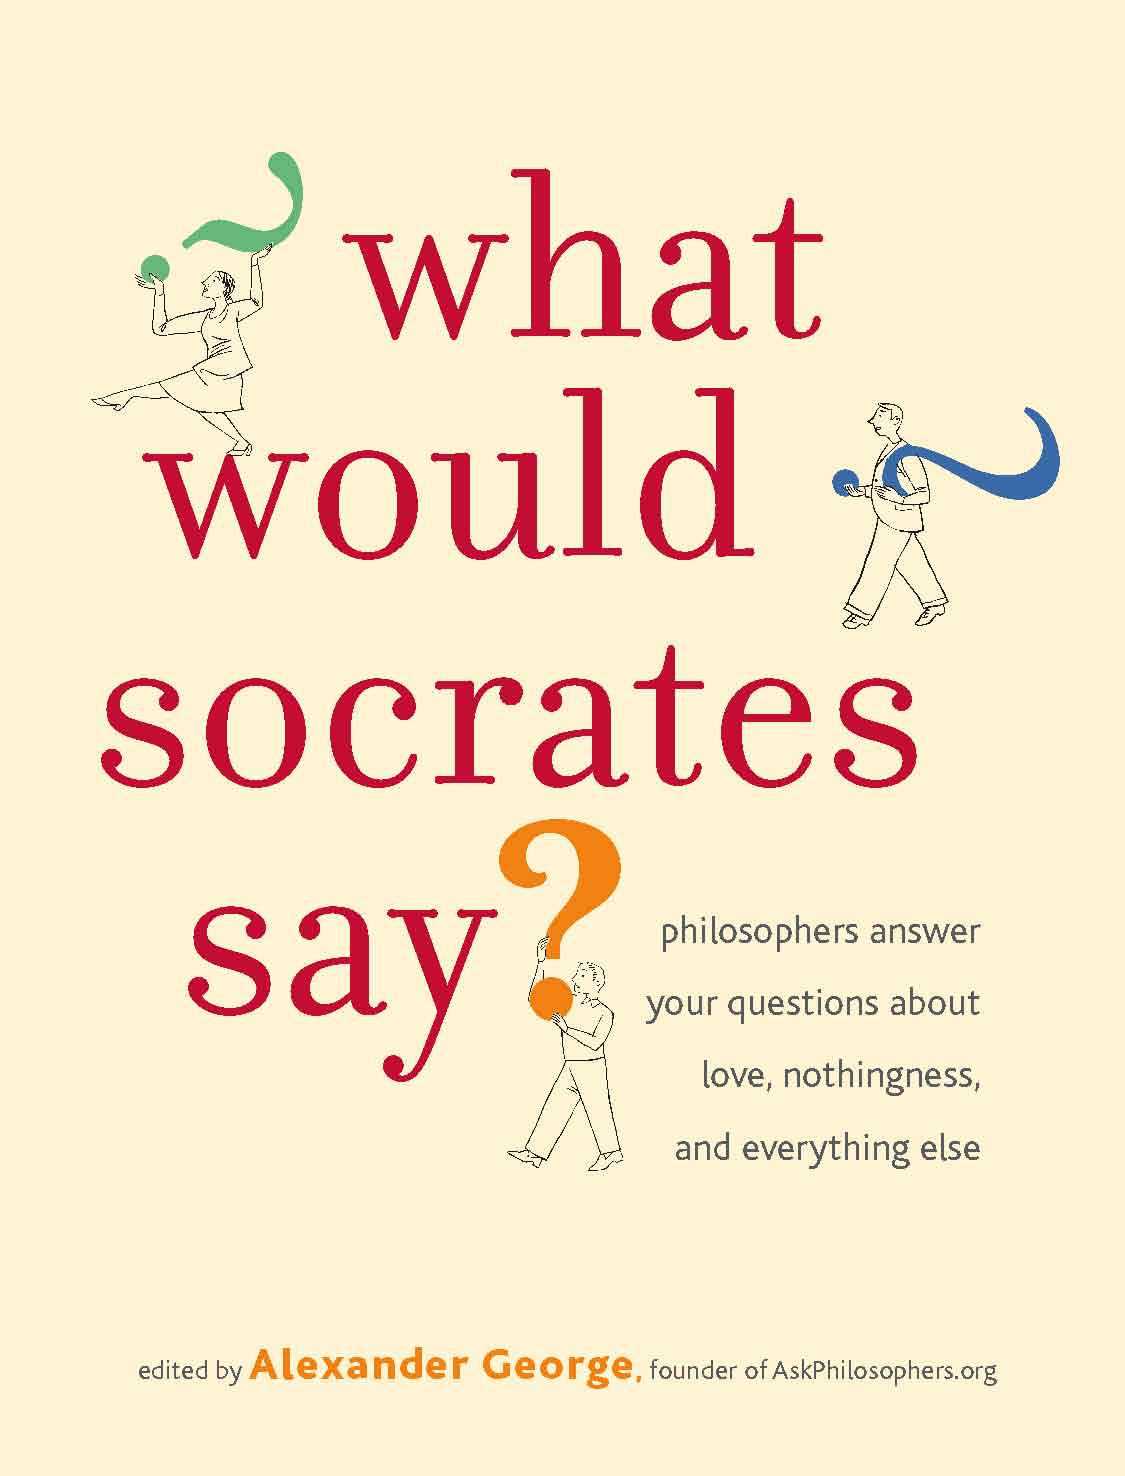 What Would Socrates Say?